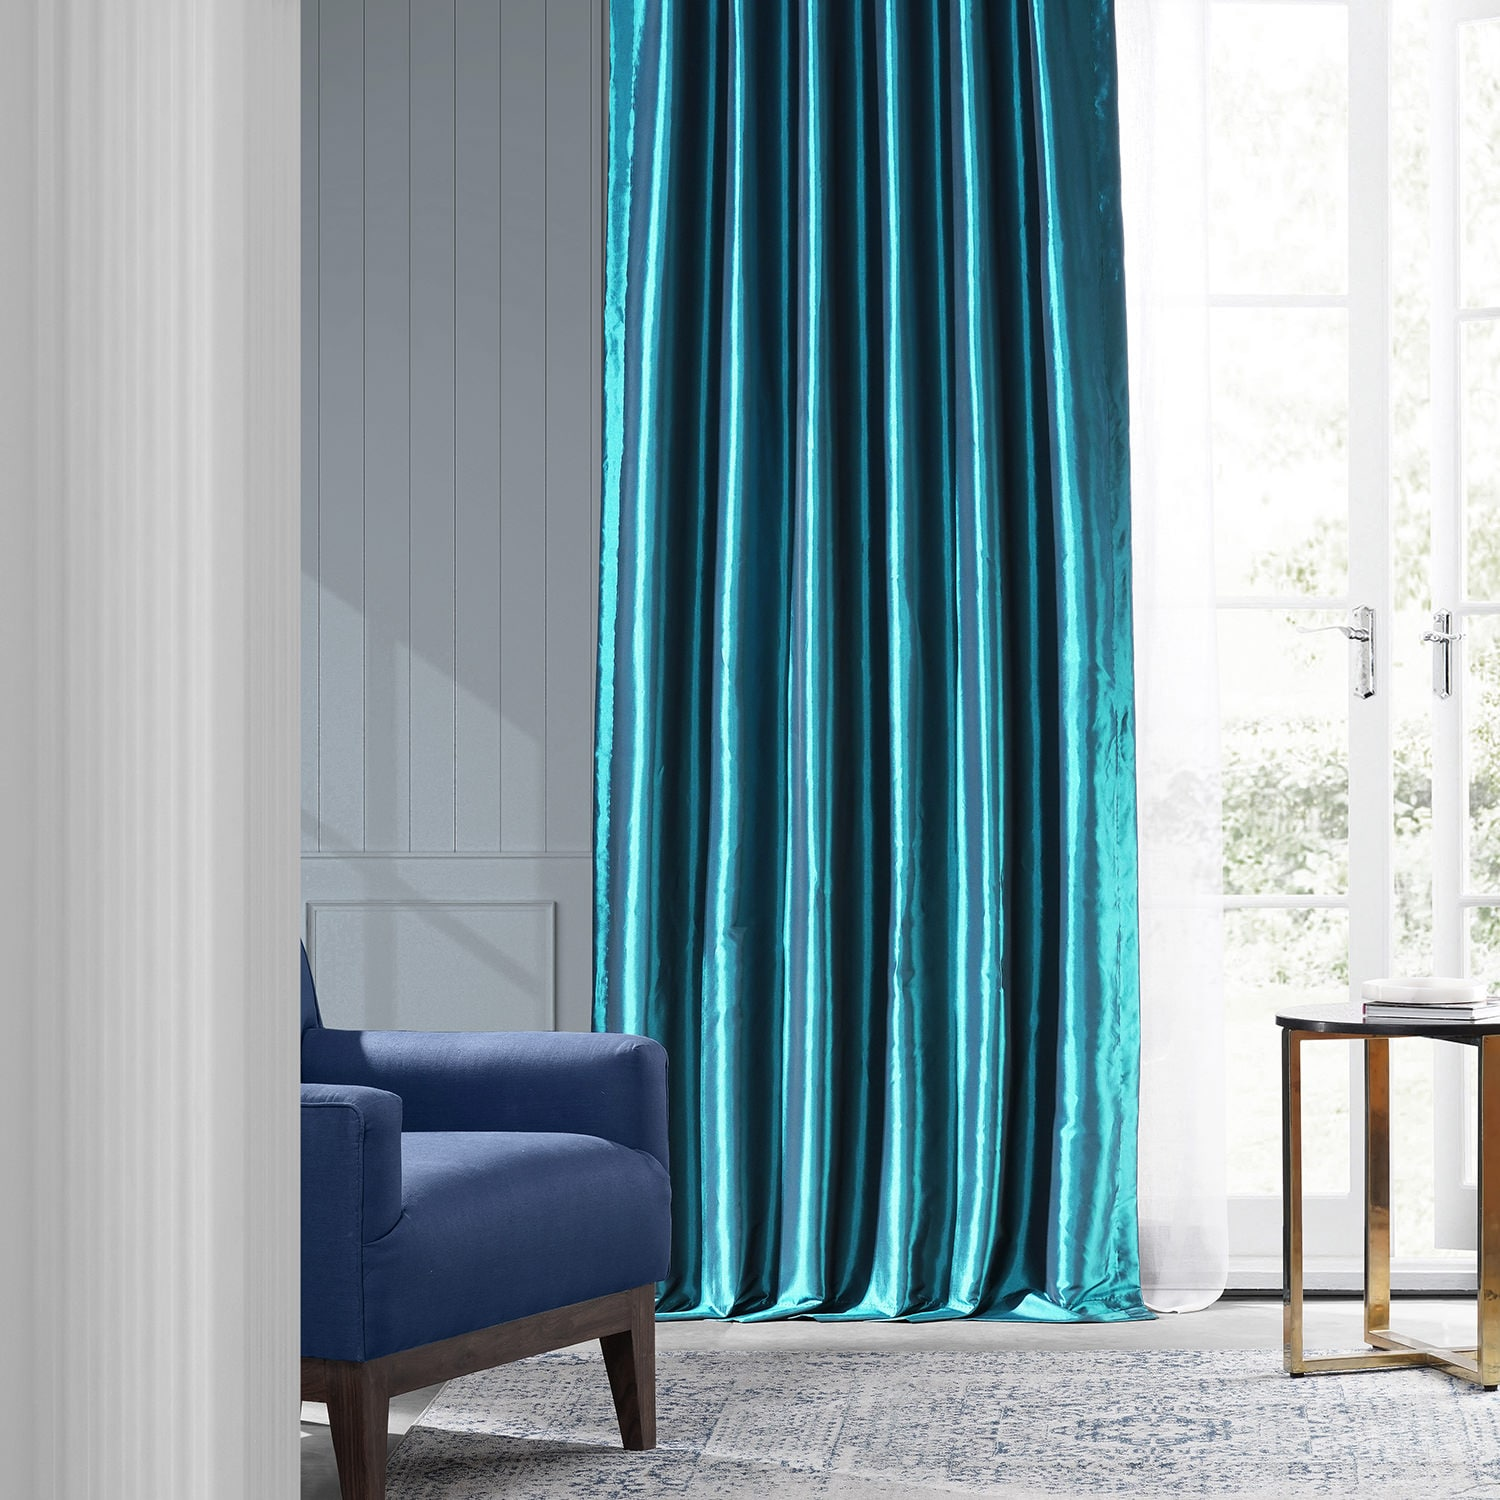 curtains where accent buy and drapery decorating for beautiful drapes interior window to curtain